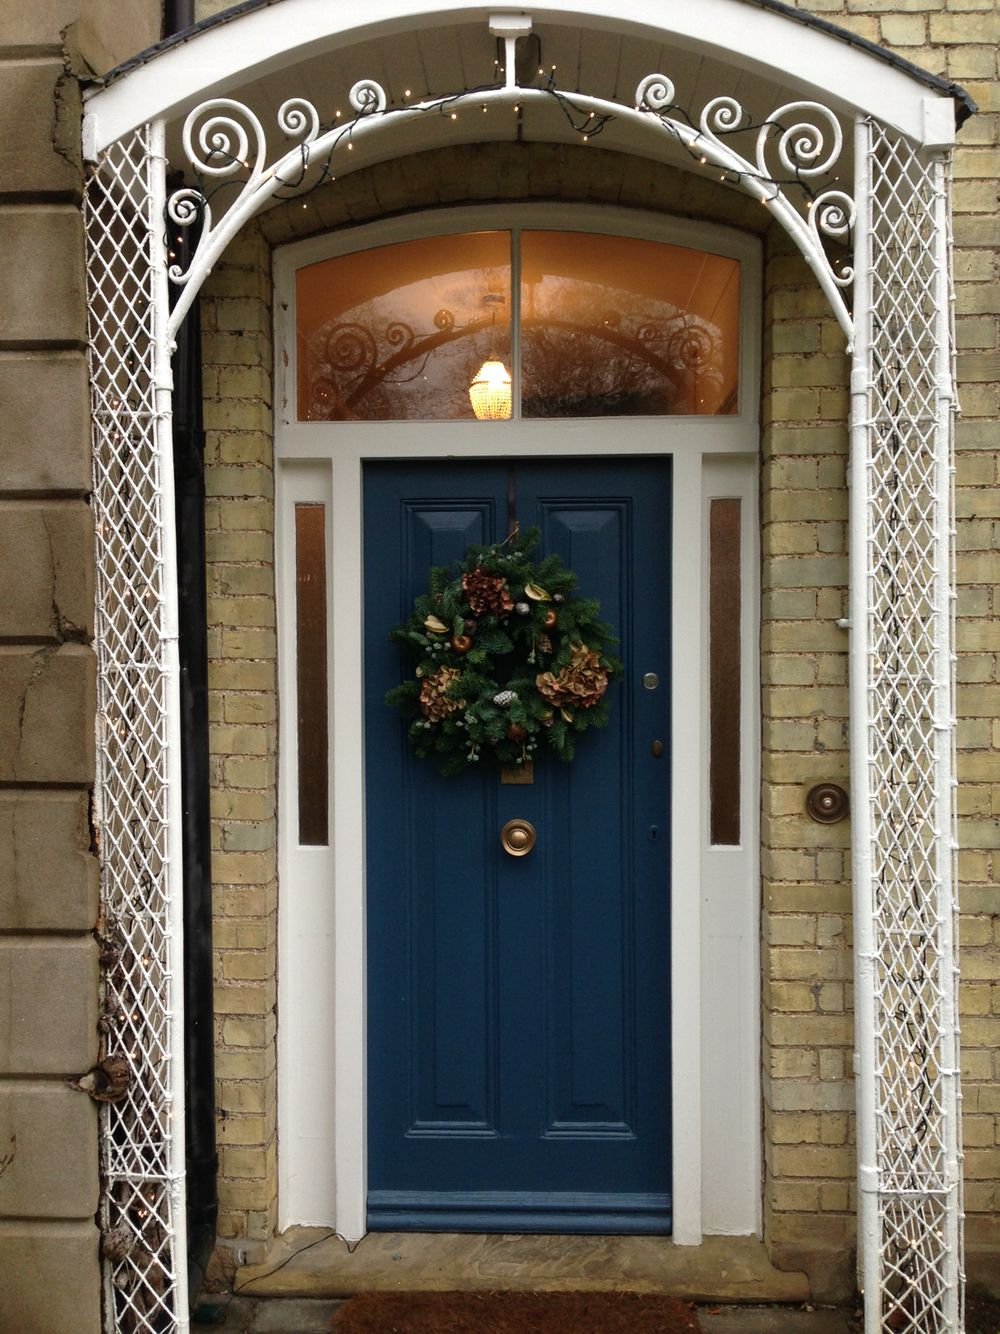 Our Stiffkey Blue front door at Christmas   Painted front doors ...